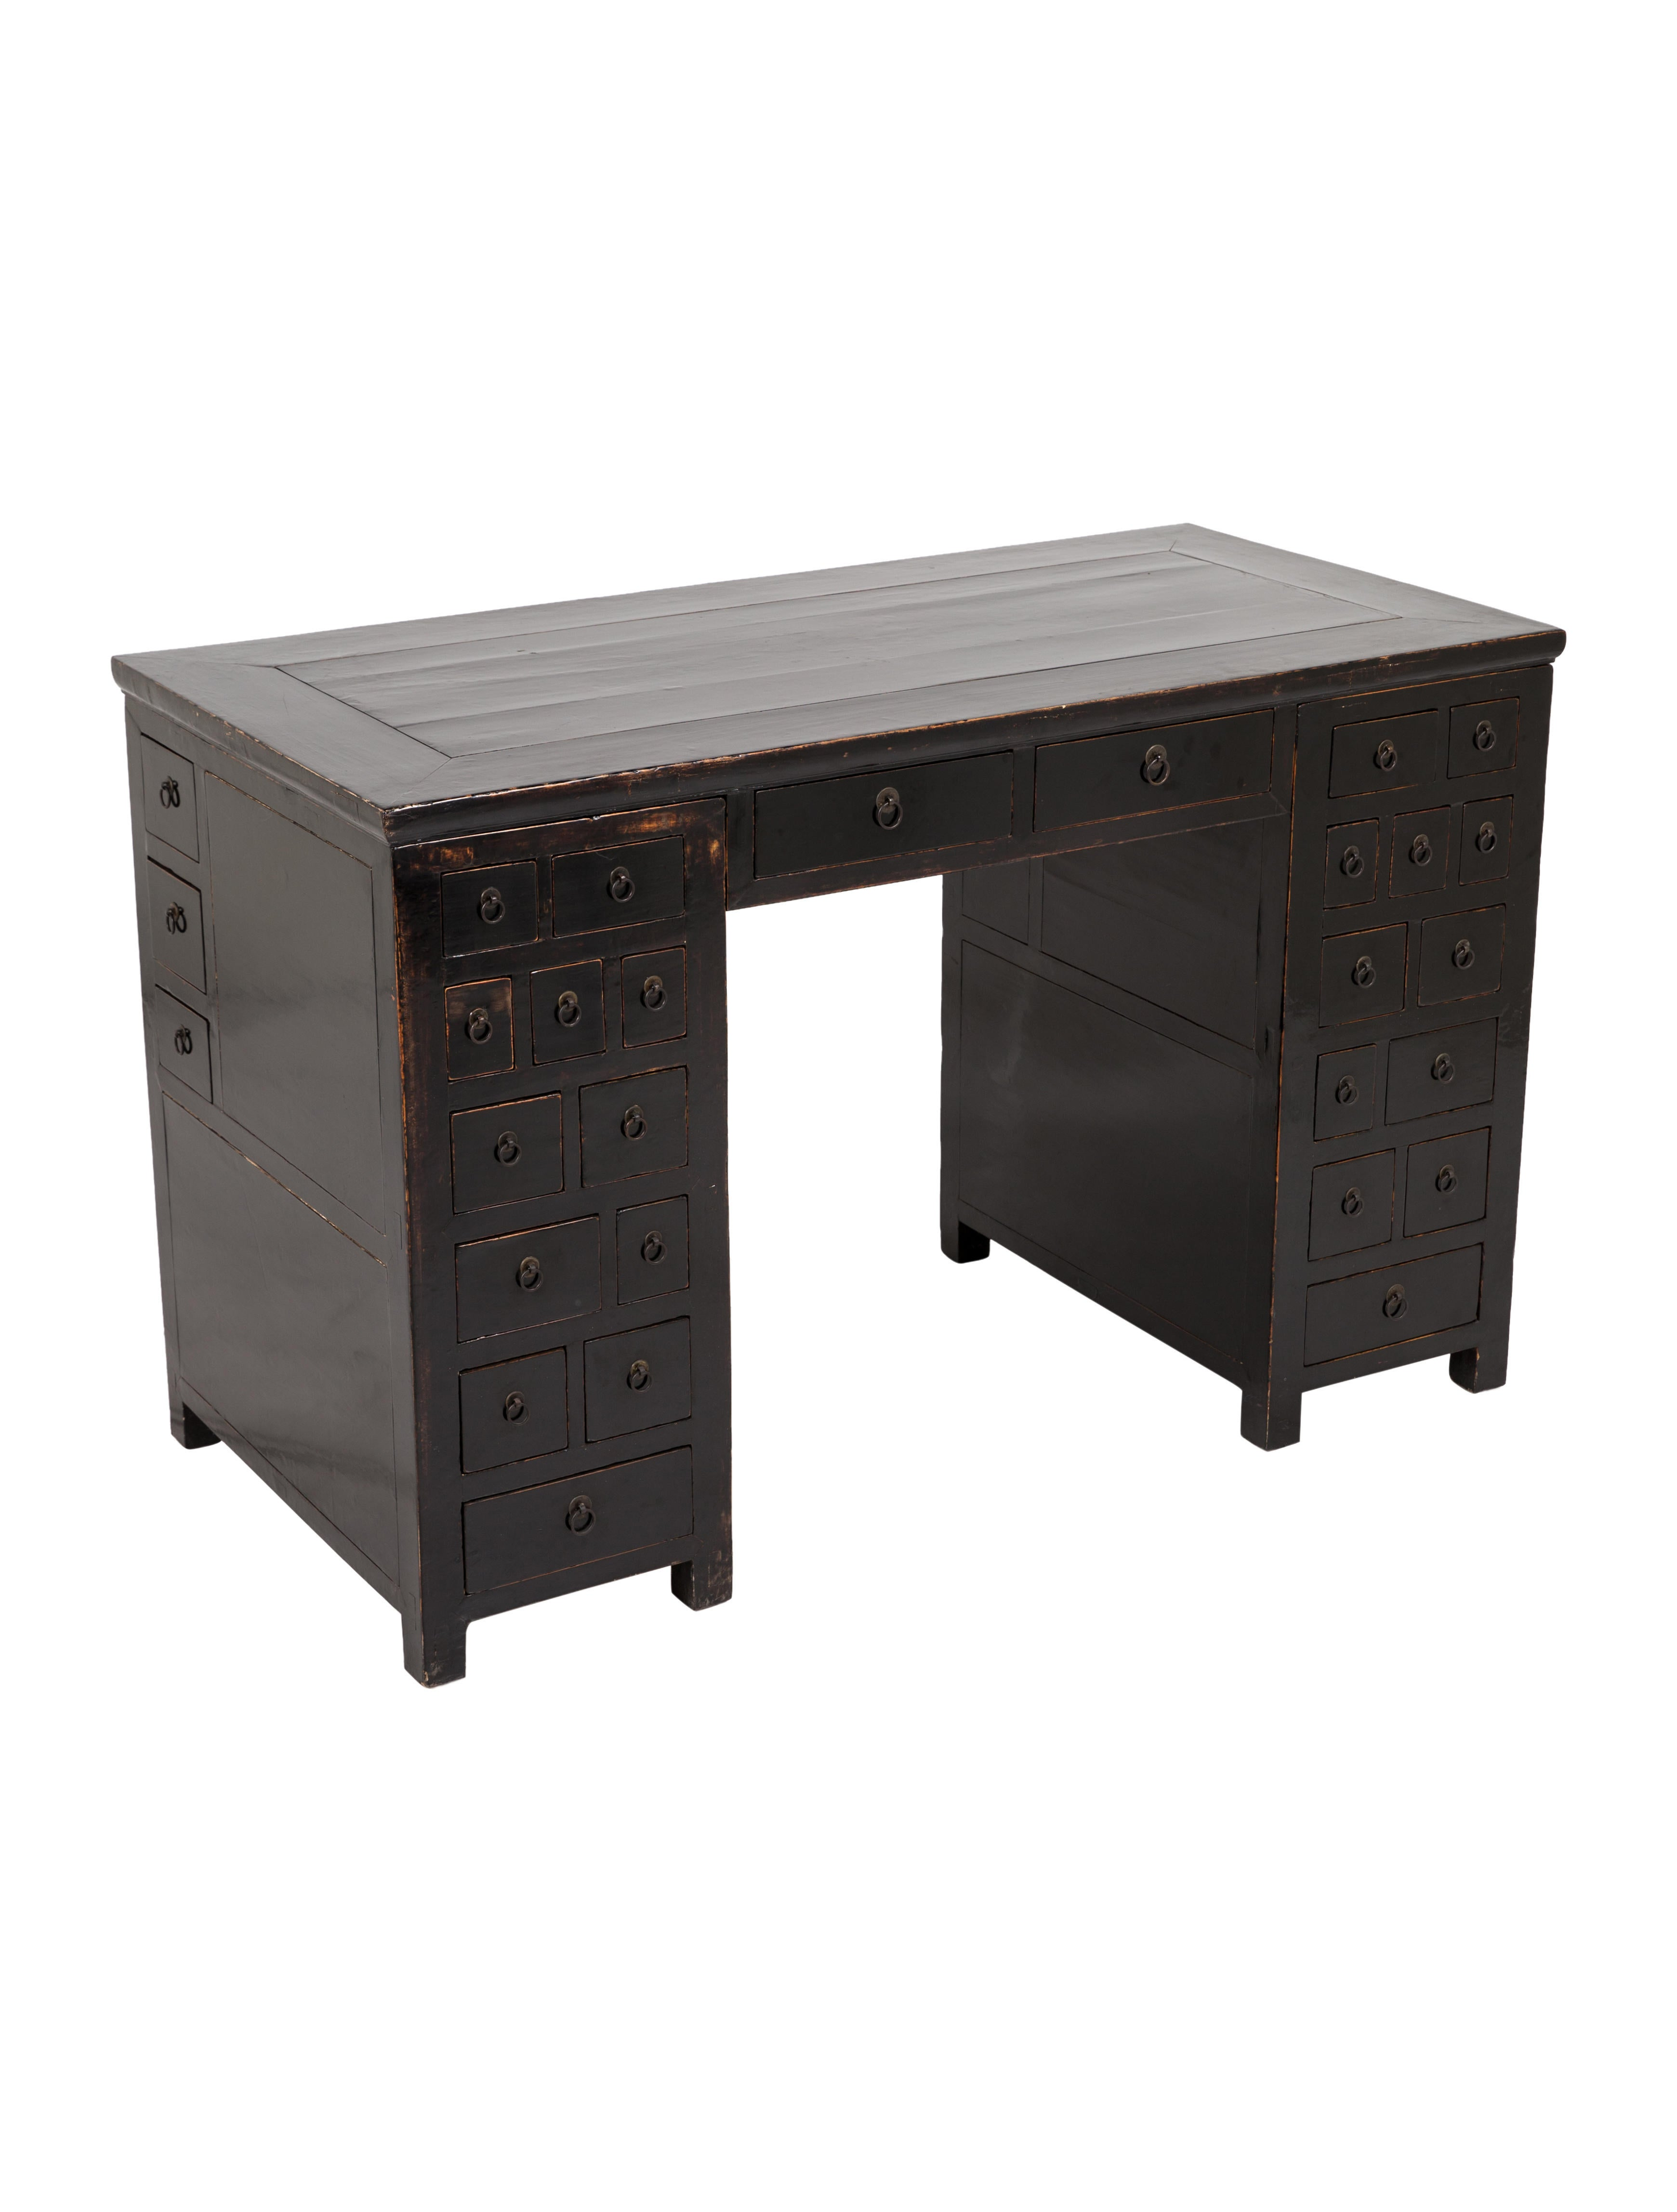 Chinese Apothecary Desk Furniture Furni20546 The Realreal